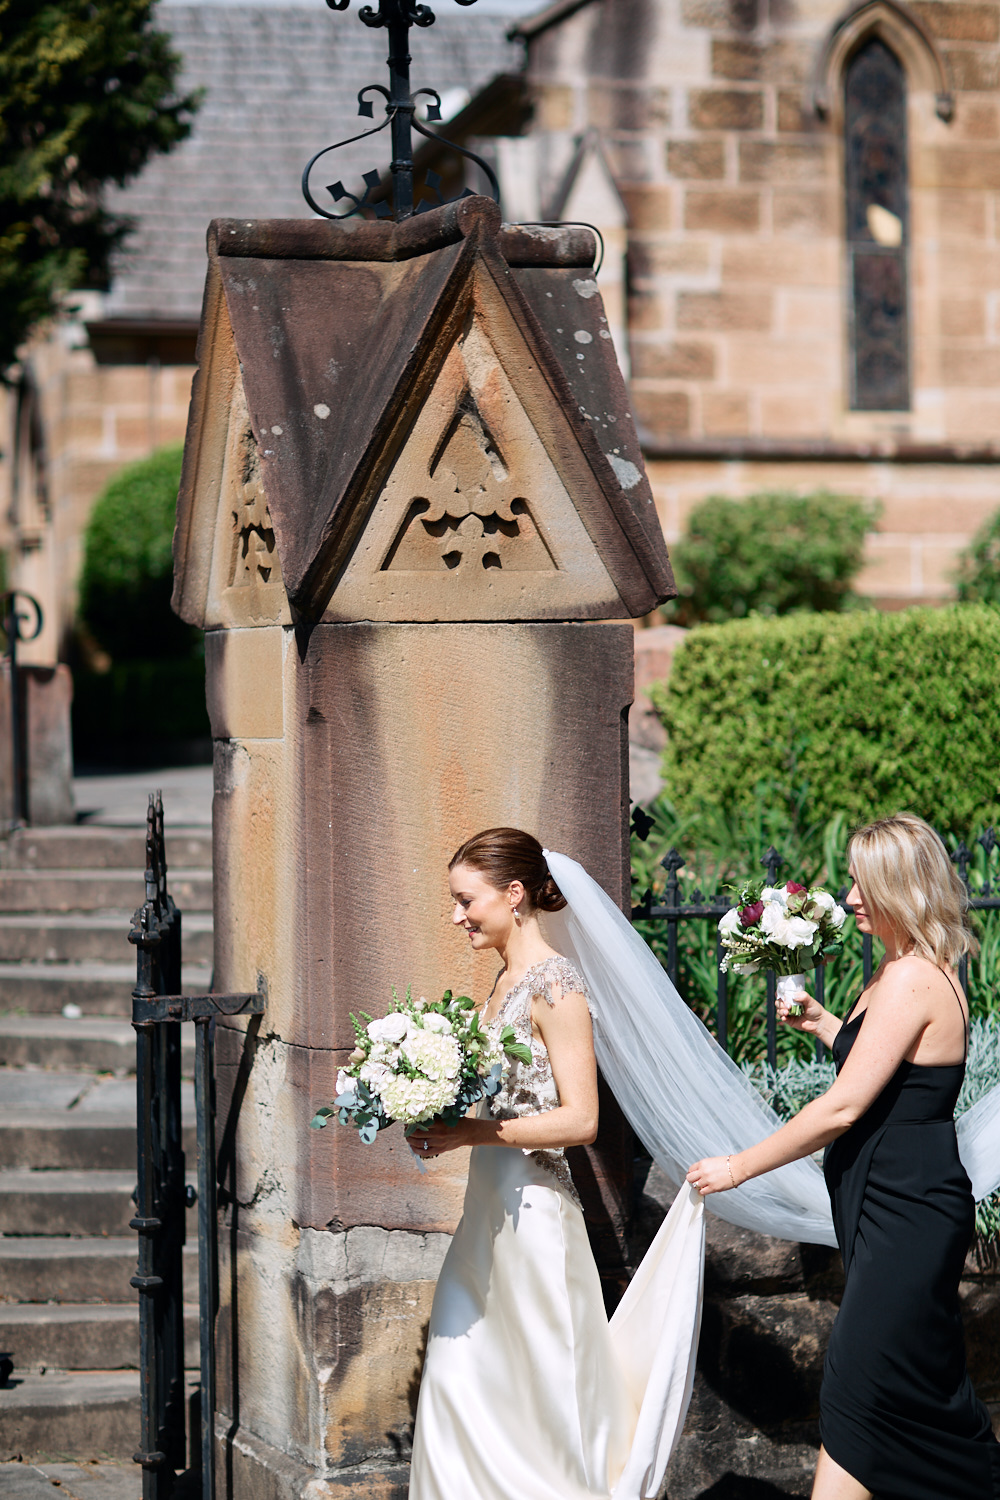 Maid of honour lifting brides dress in front of St Marks Anglican Church, Darling Point